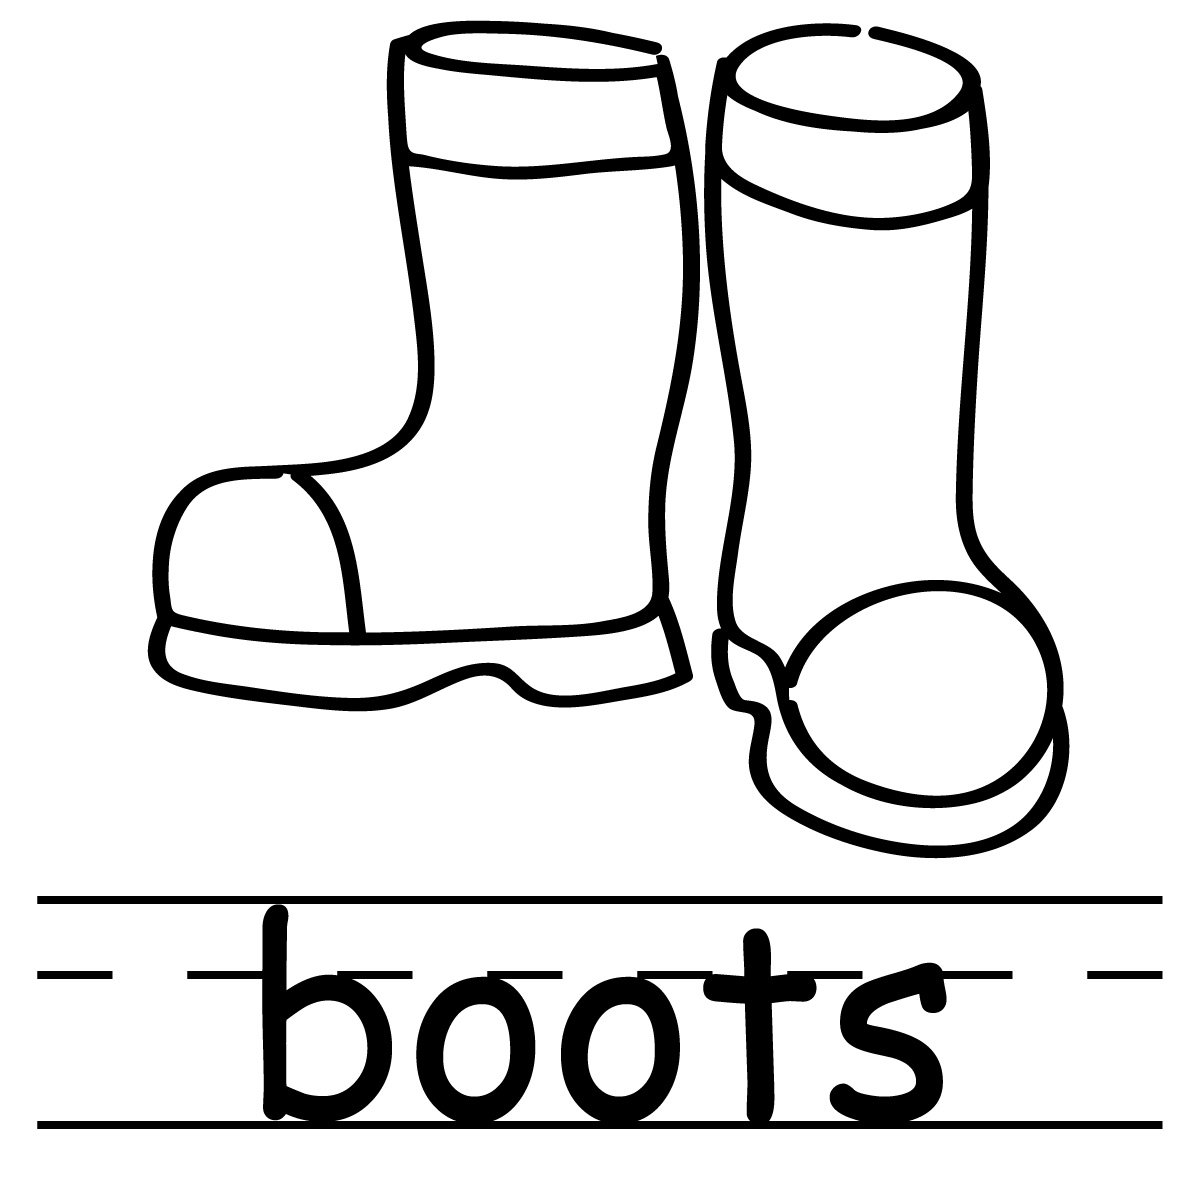 Boots Clipart Black And White